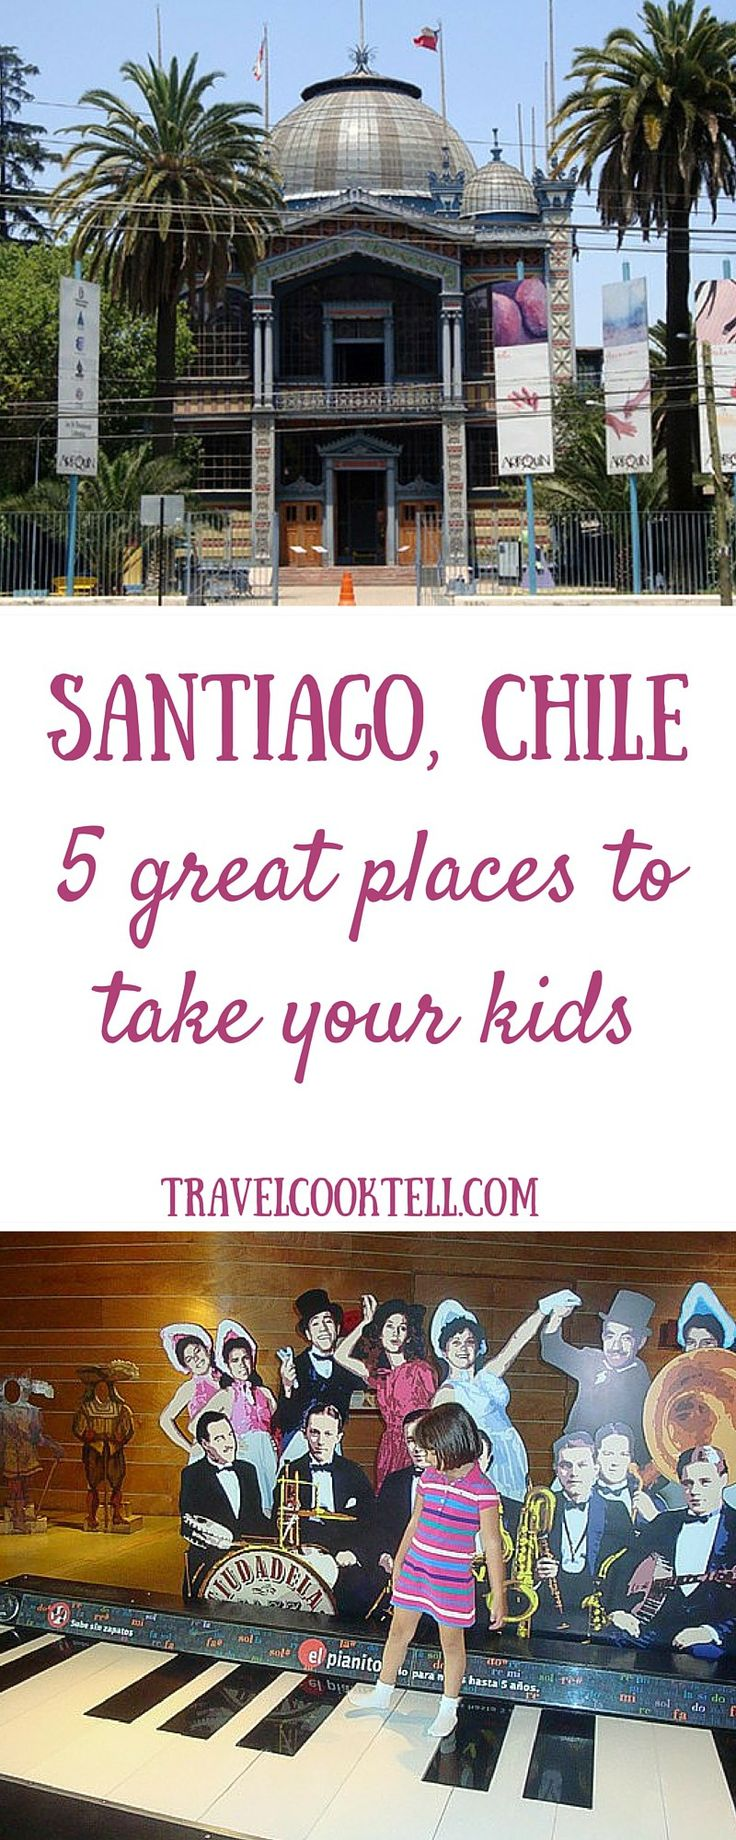 79 best images about my photography on pinterest santiago cook - Santiago Chile 5 Great Places To Take Your Kids Travel Cook Tell